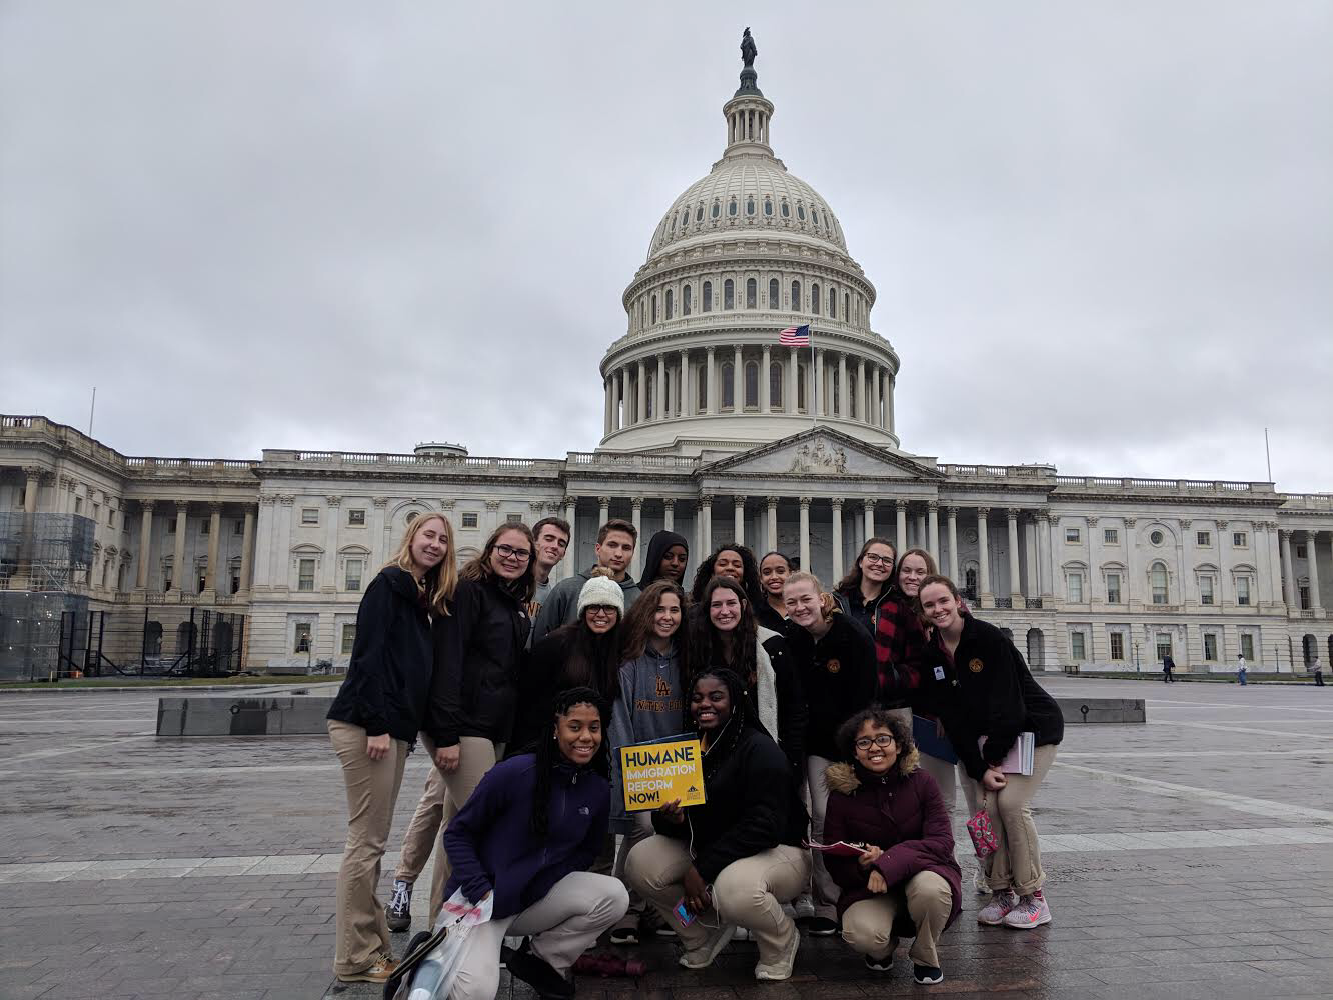 The Loyola group smiles in front of the Capitol Building after their successful meetings with Representative Schakowsky and Senator Duckworth.